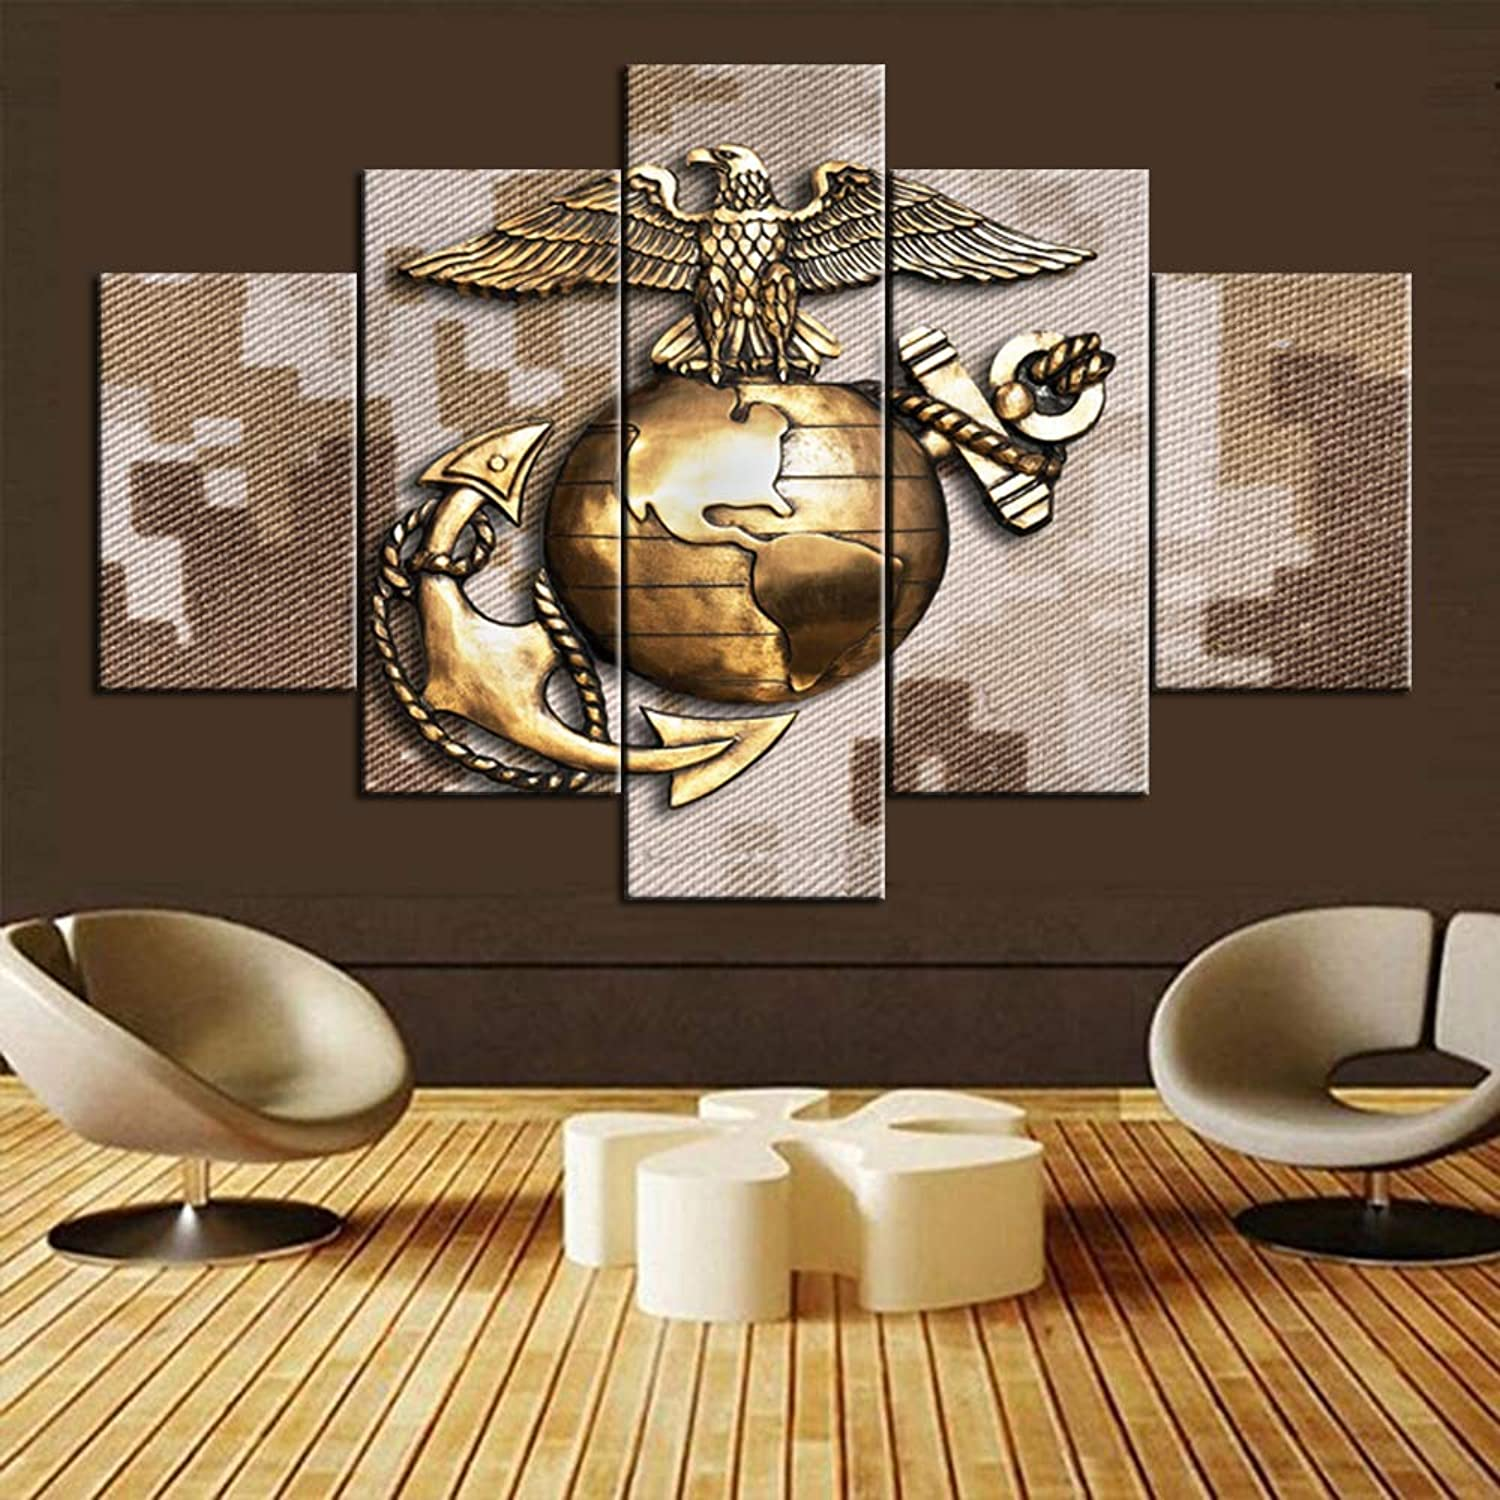 Pictures for Living Room Native American Decor 5 Piece Canvas Wall Art U.S. Marine Corps Paintings Contemporary Artwork Home Decorations Giclee Wooden Framed Stretched Ready to Hang(60''Wx40''H)